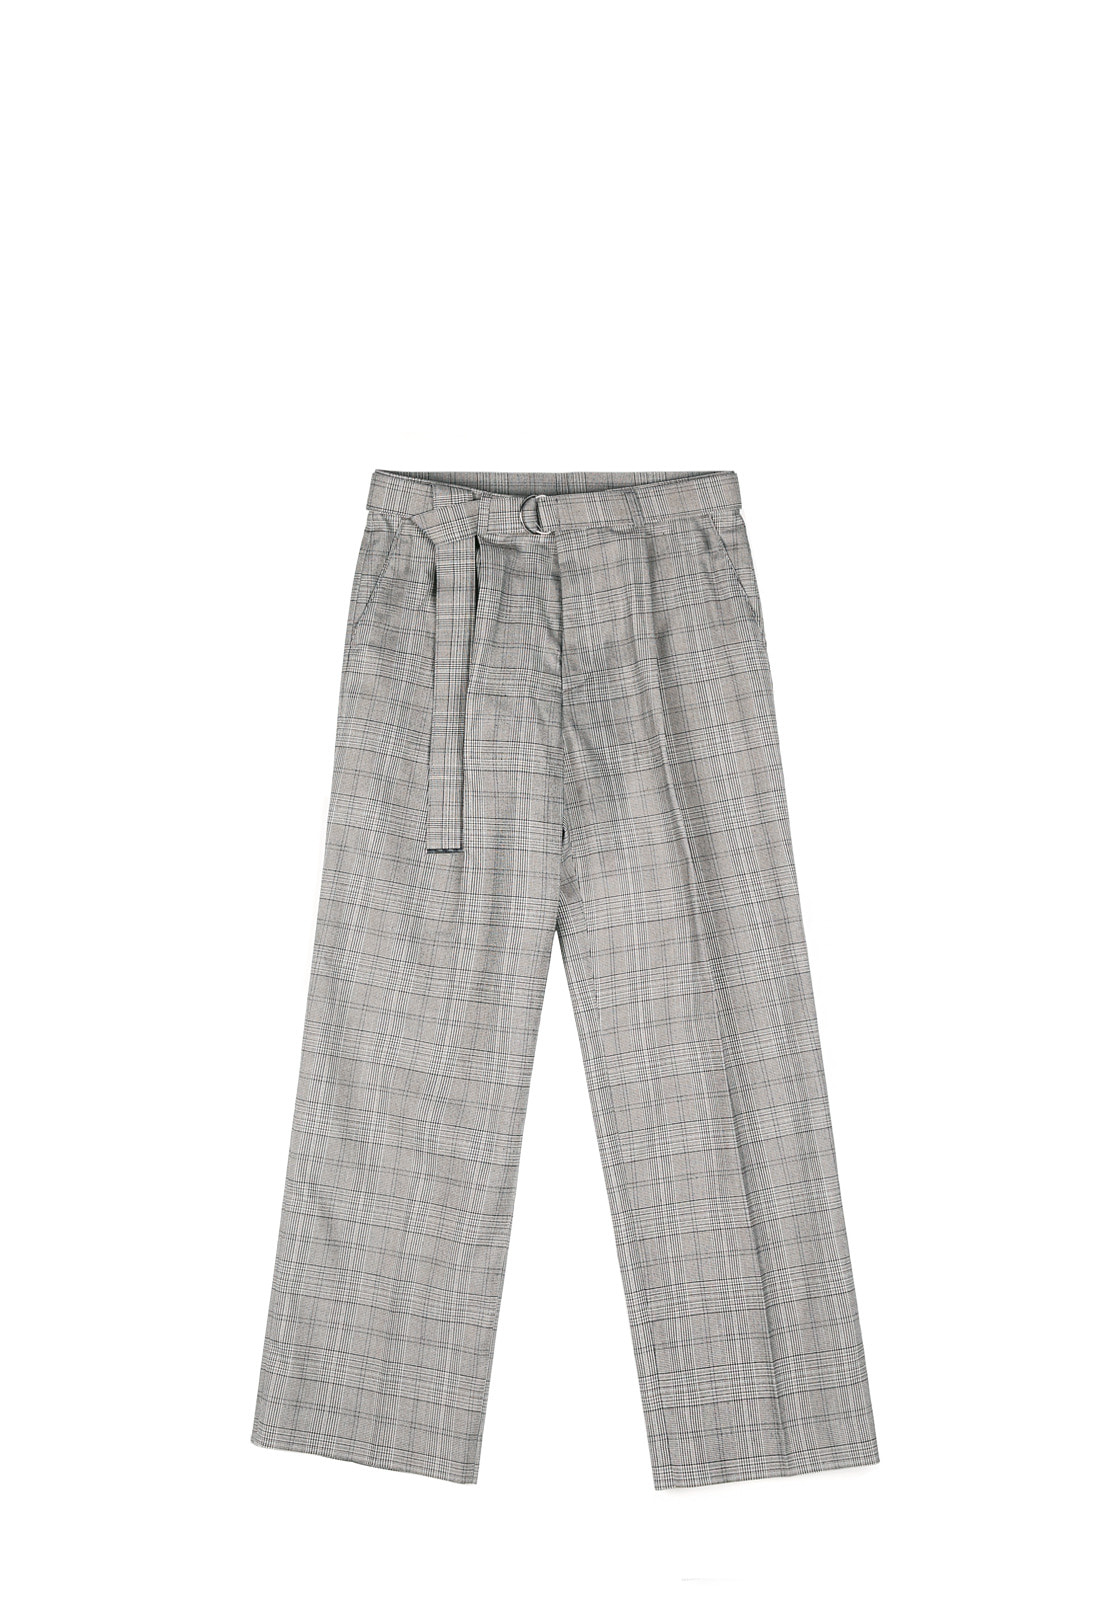 V251 CHECK BELT WIDE SLACKS